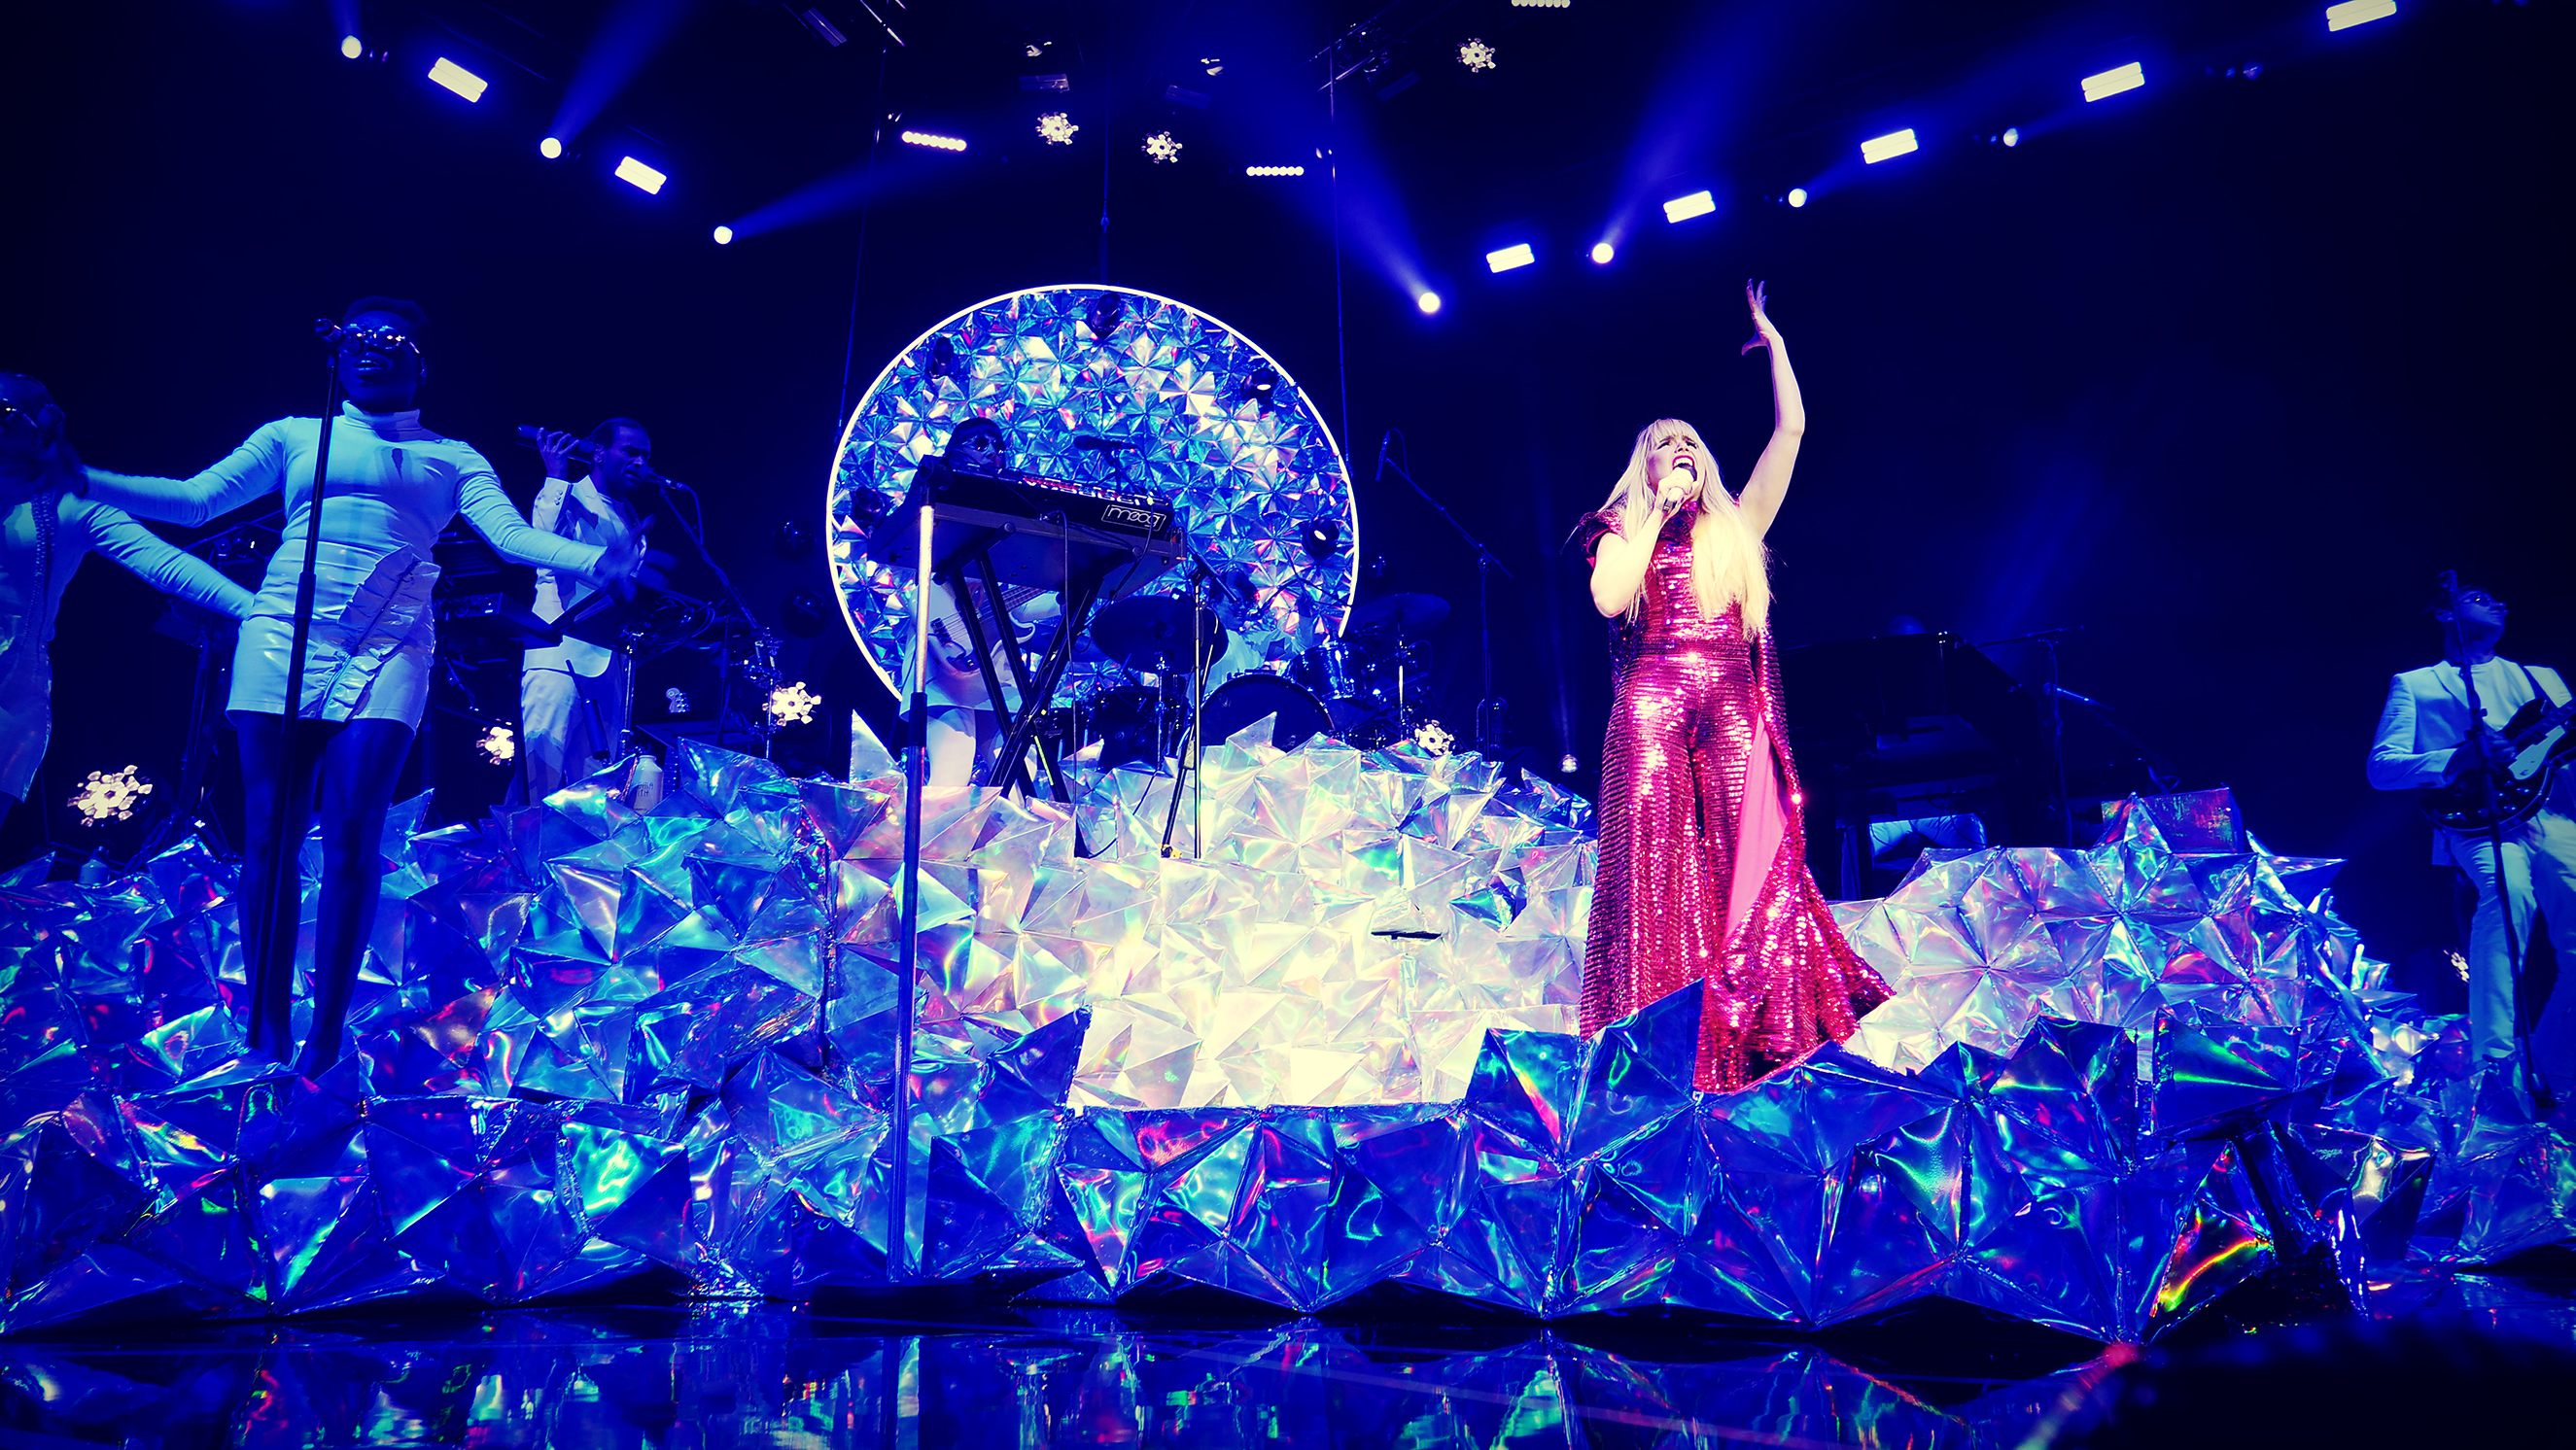 Paloma Faith, The Architect Tour, 2018